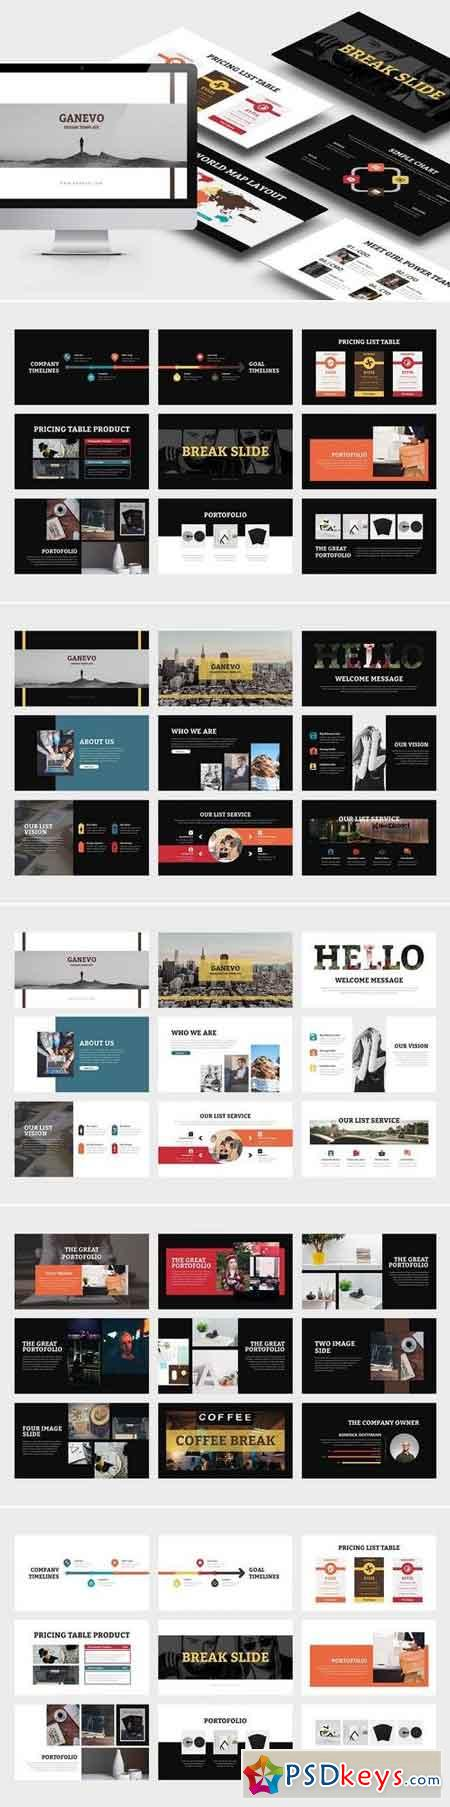 Ganevo Creative Studio Keynote Template